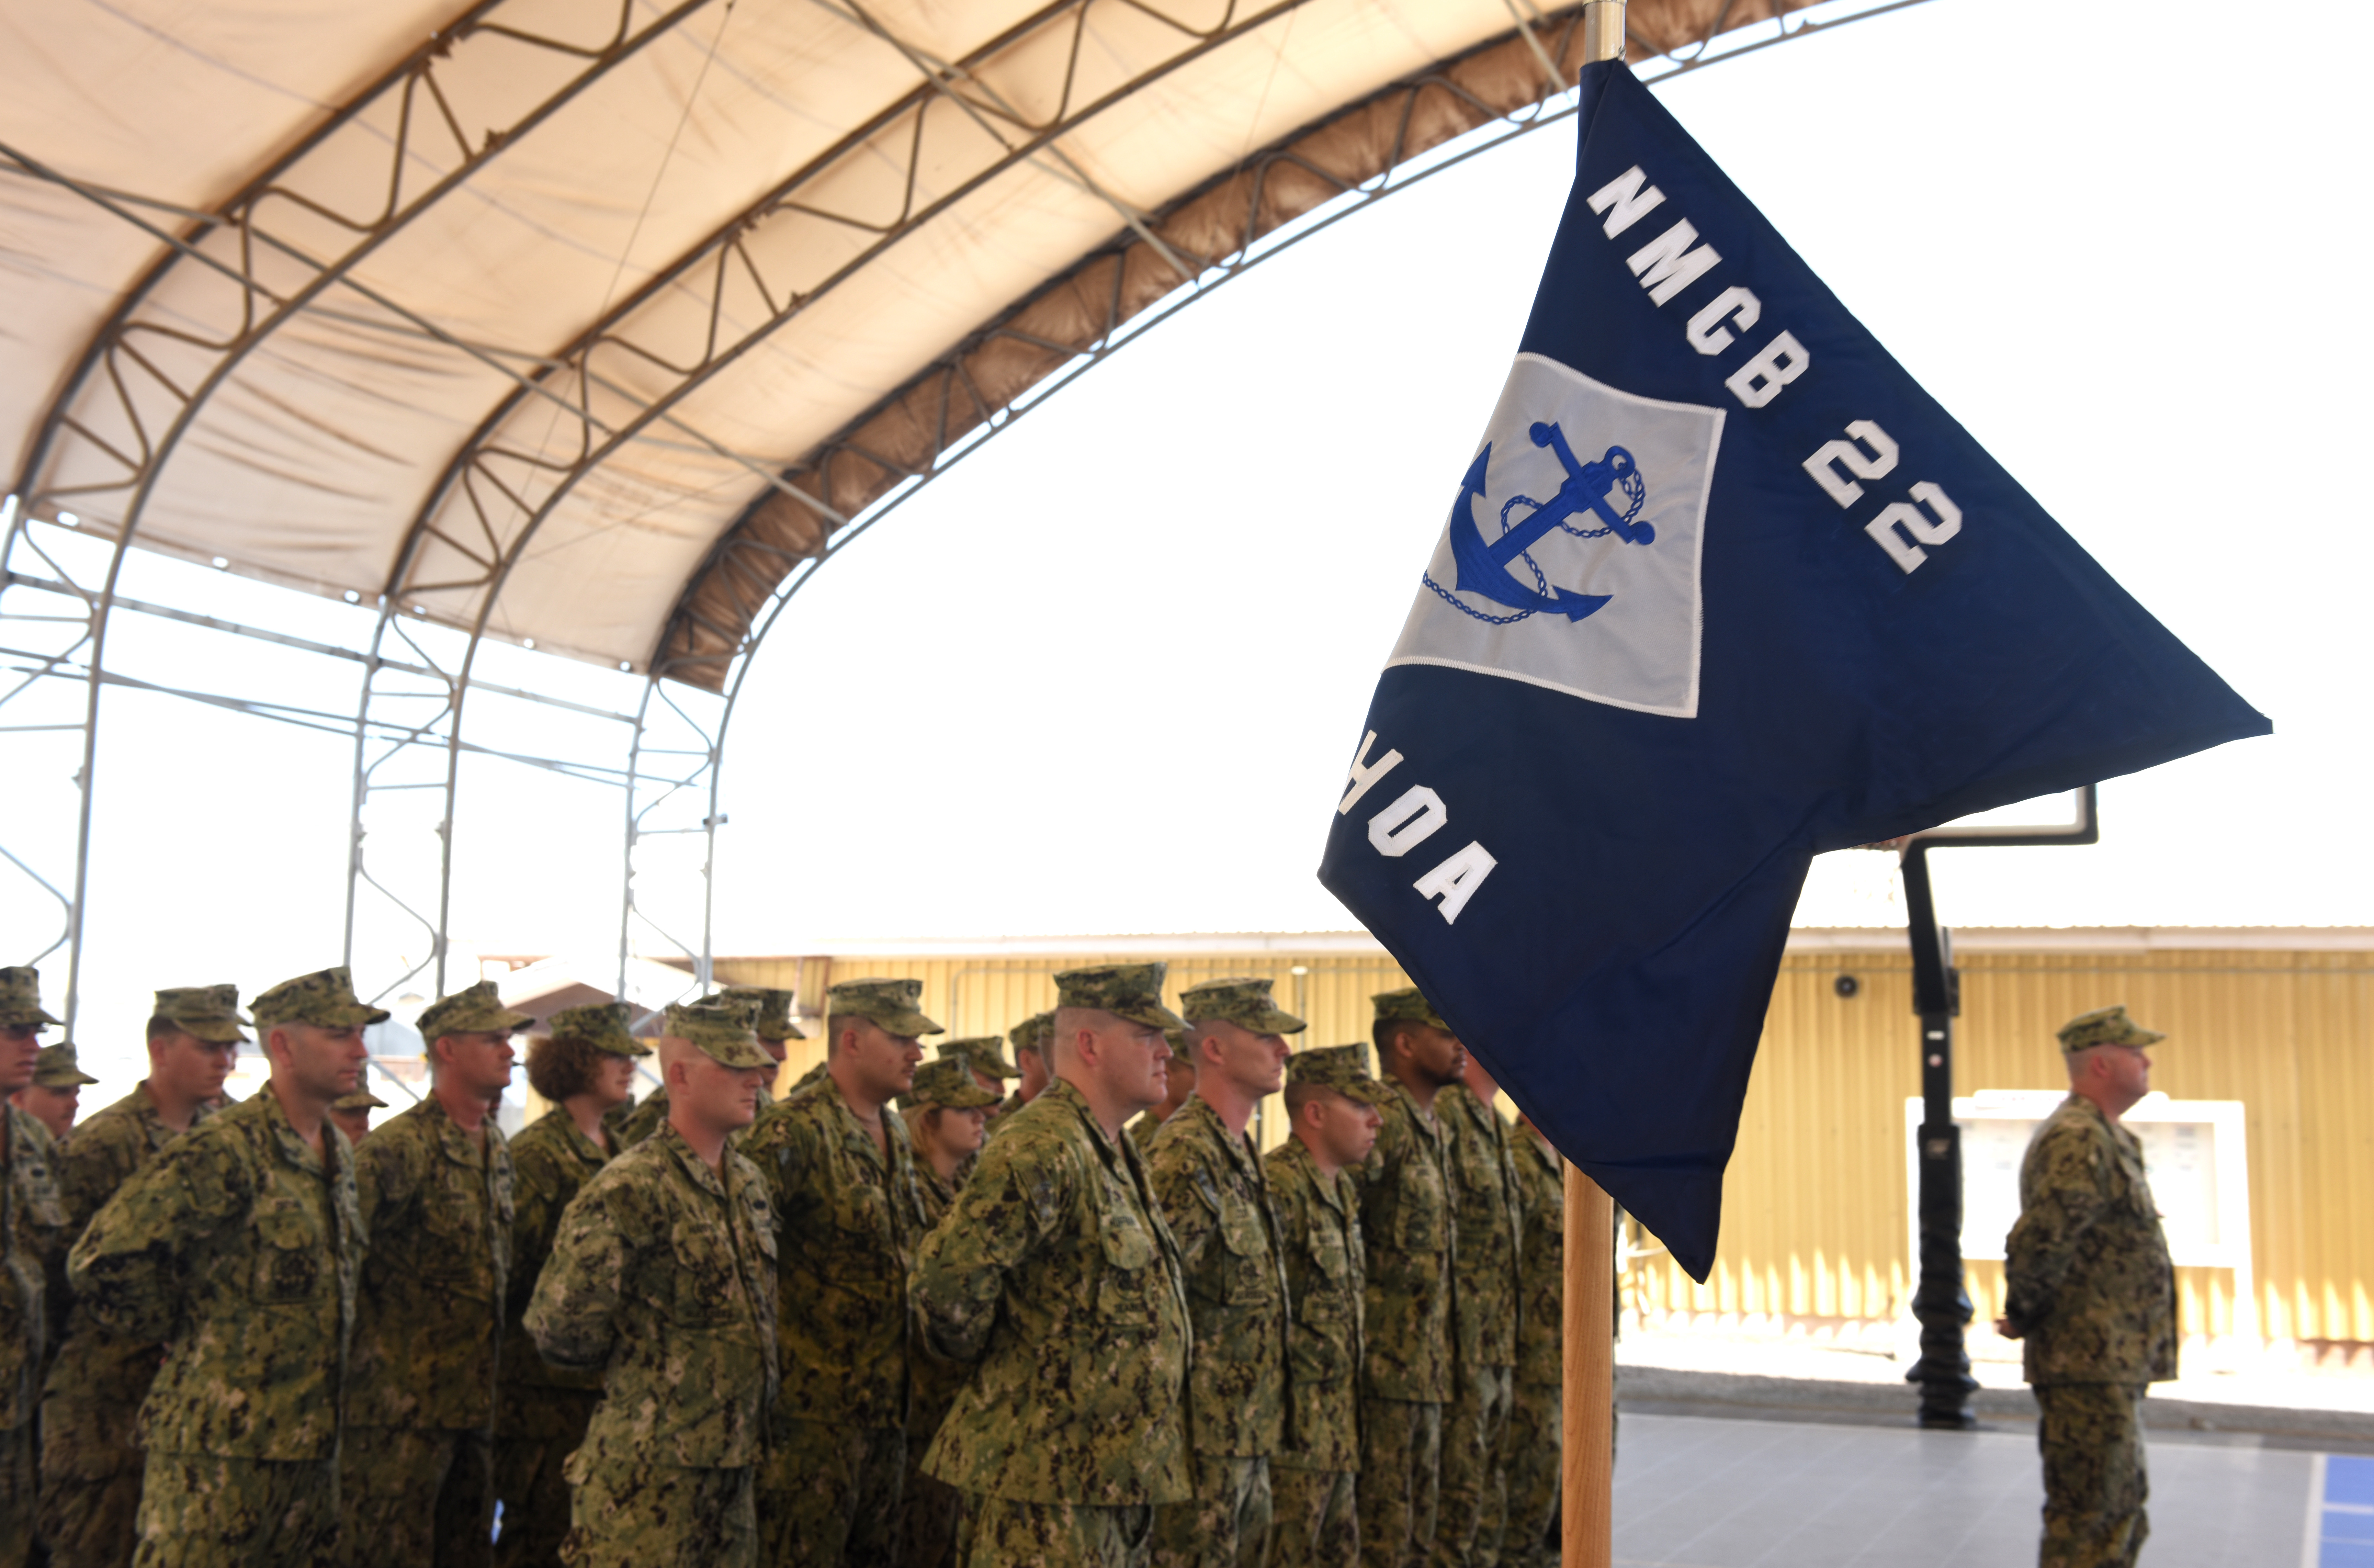 Sailors from the Naval Mobile Construction Battalion 22 attend a transfer of authority ceremony Feb. 16, 2016, at Camp Lemonnier, Djibouti. Sailors from the NMCB22 replaced the guidon at center stage signifying the transfer of authority from NMCB27, which is now preparing to redeploy home. (U.S. Air Force photo by Staff Sgt. Kate Thornton)